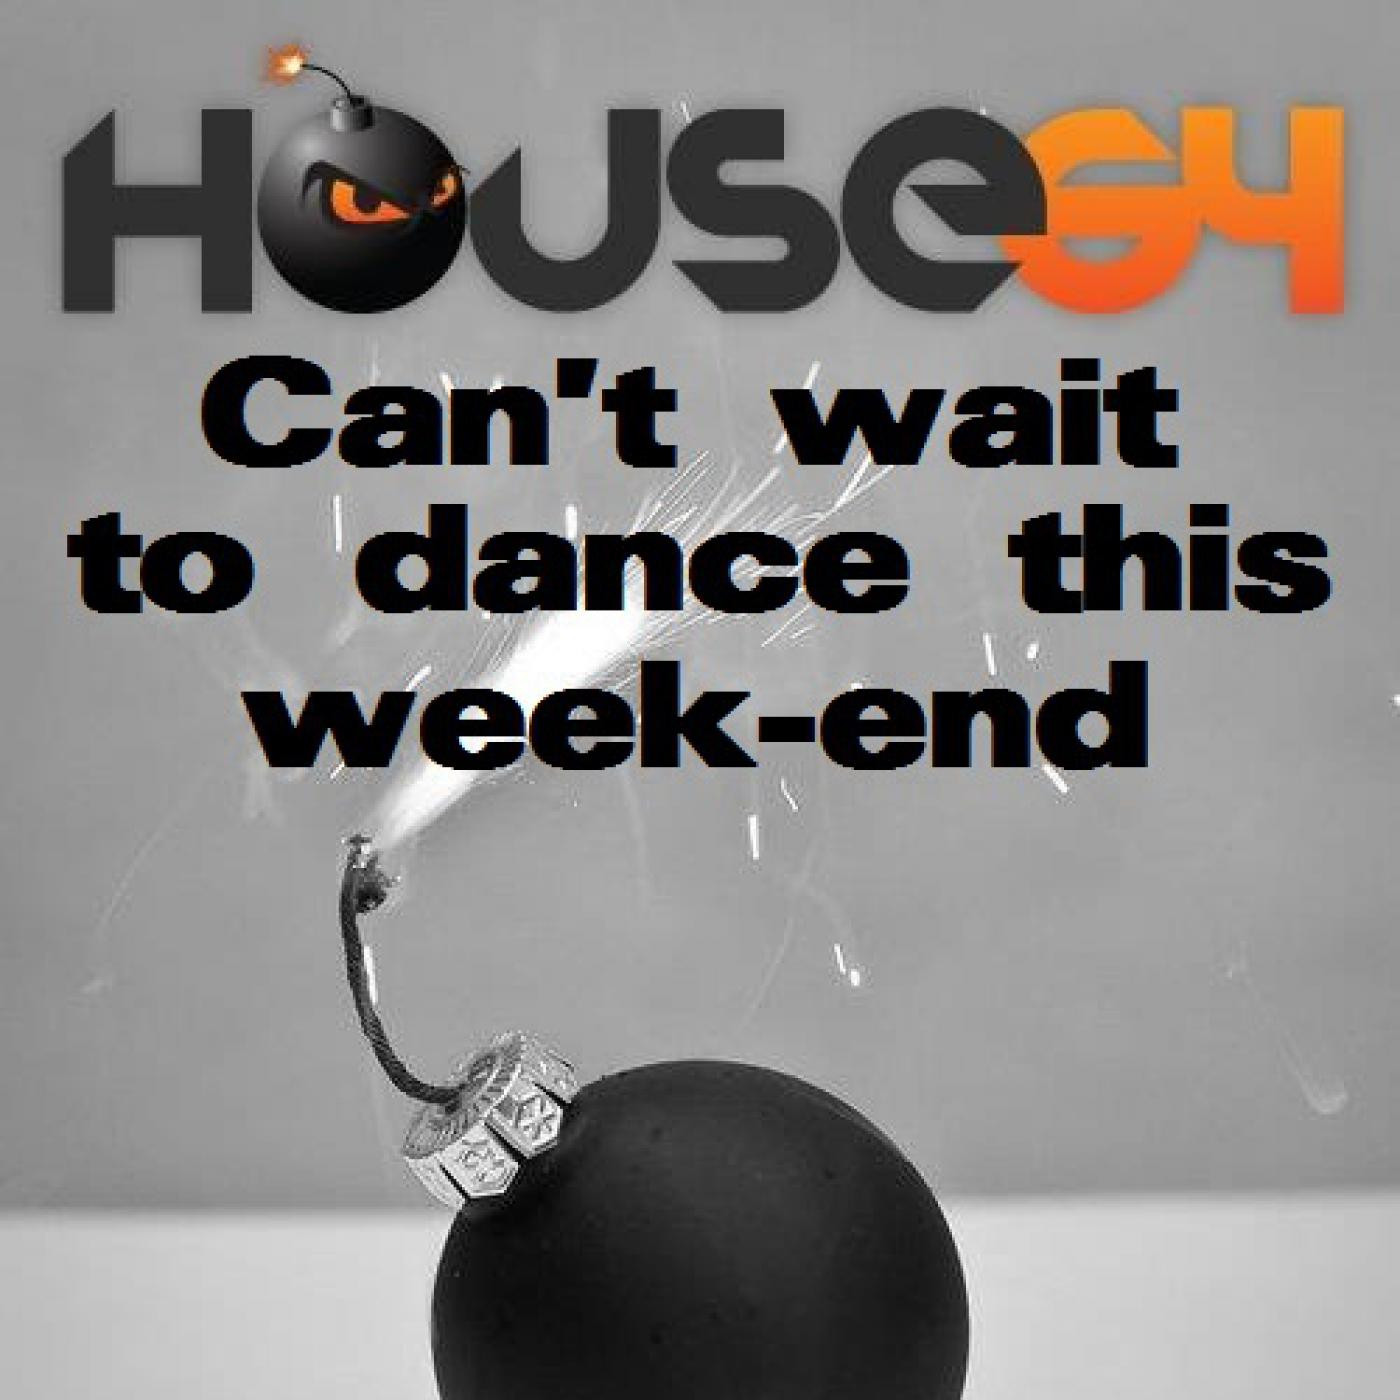 can't wait to dance this week-end